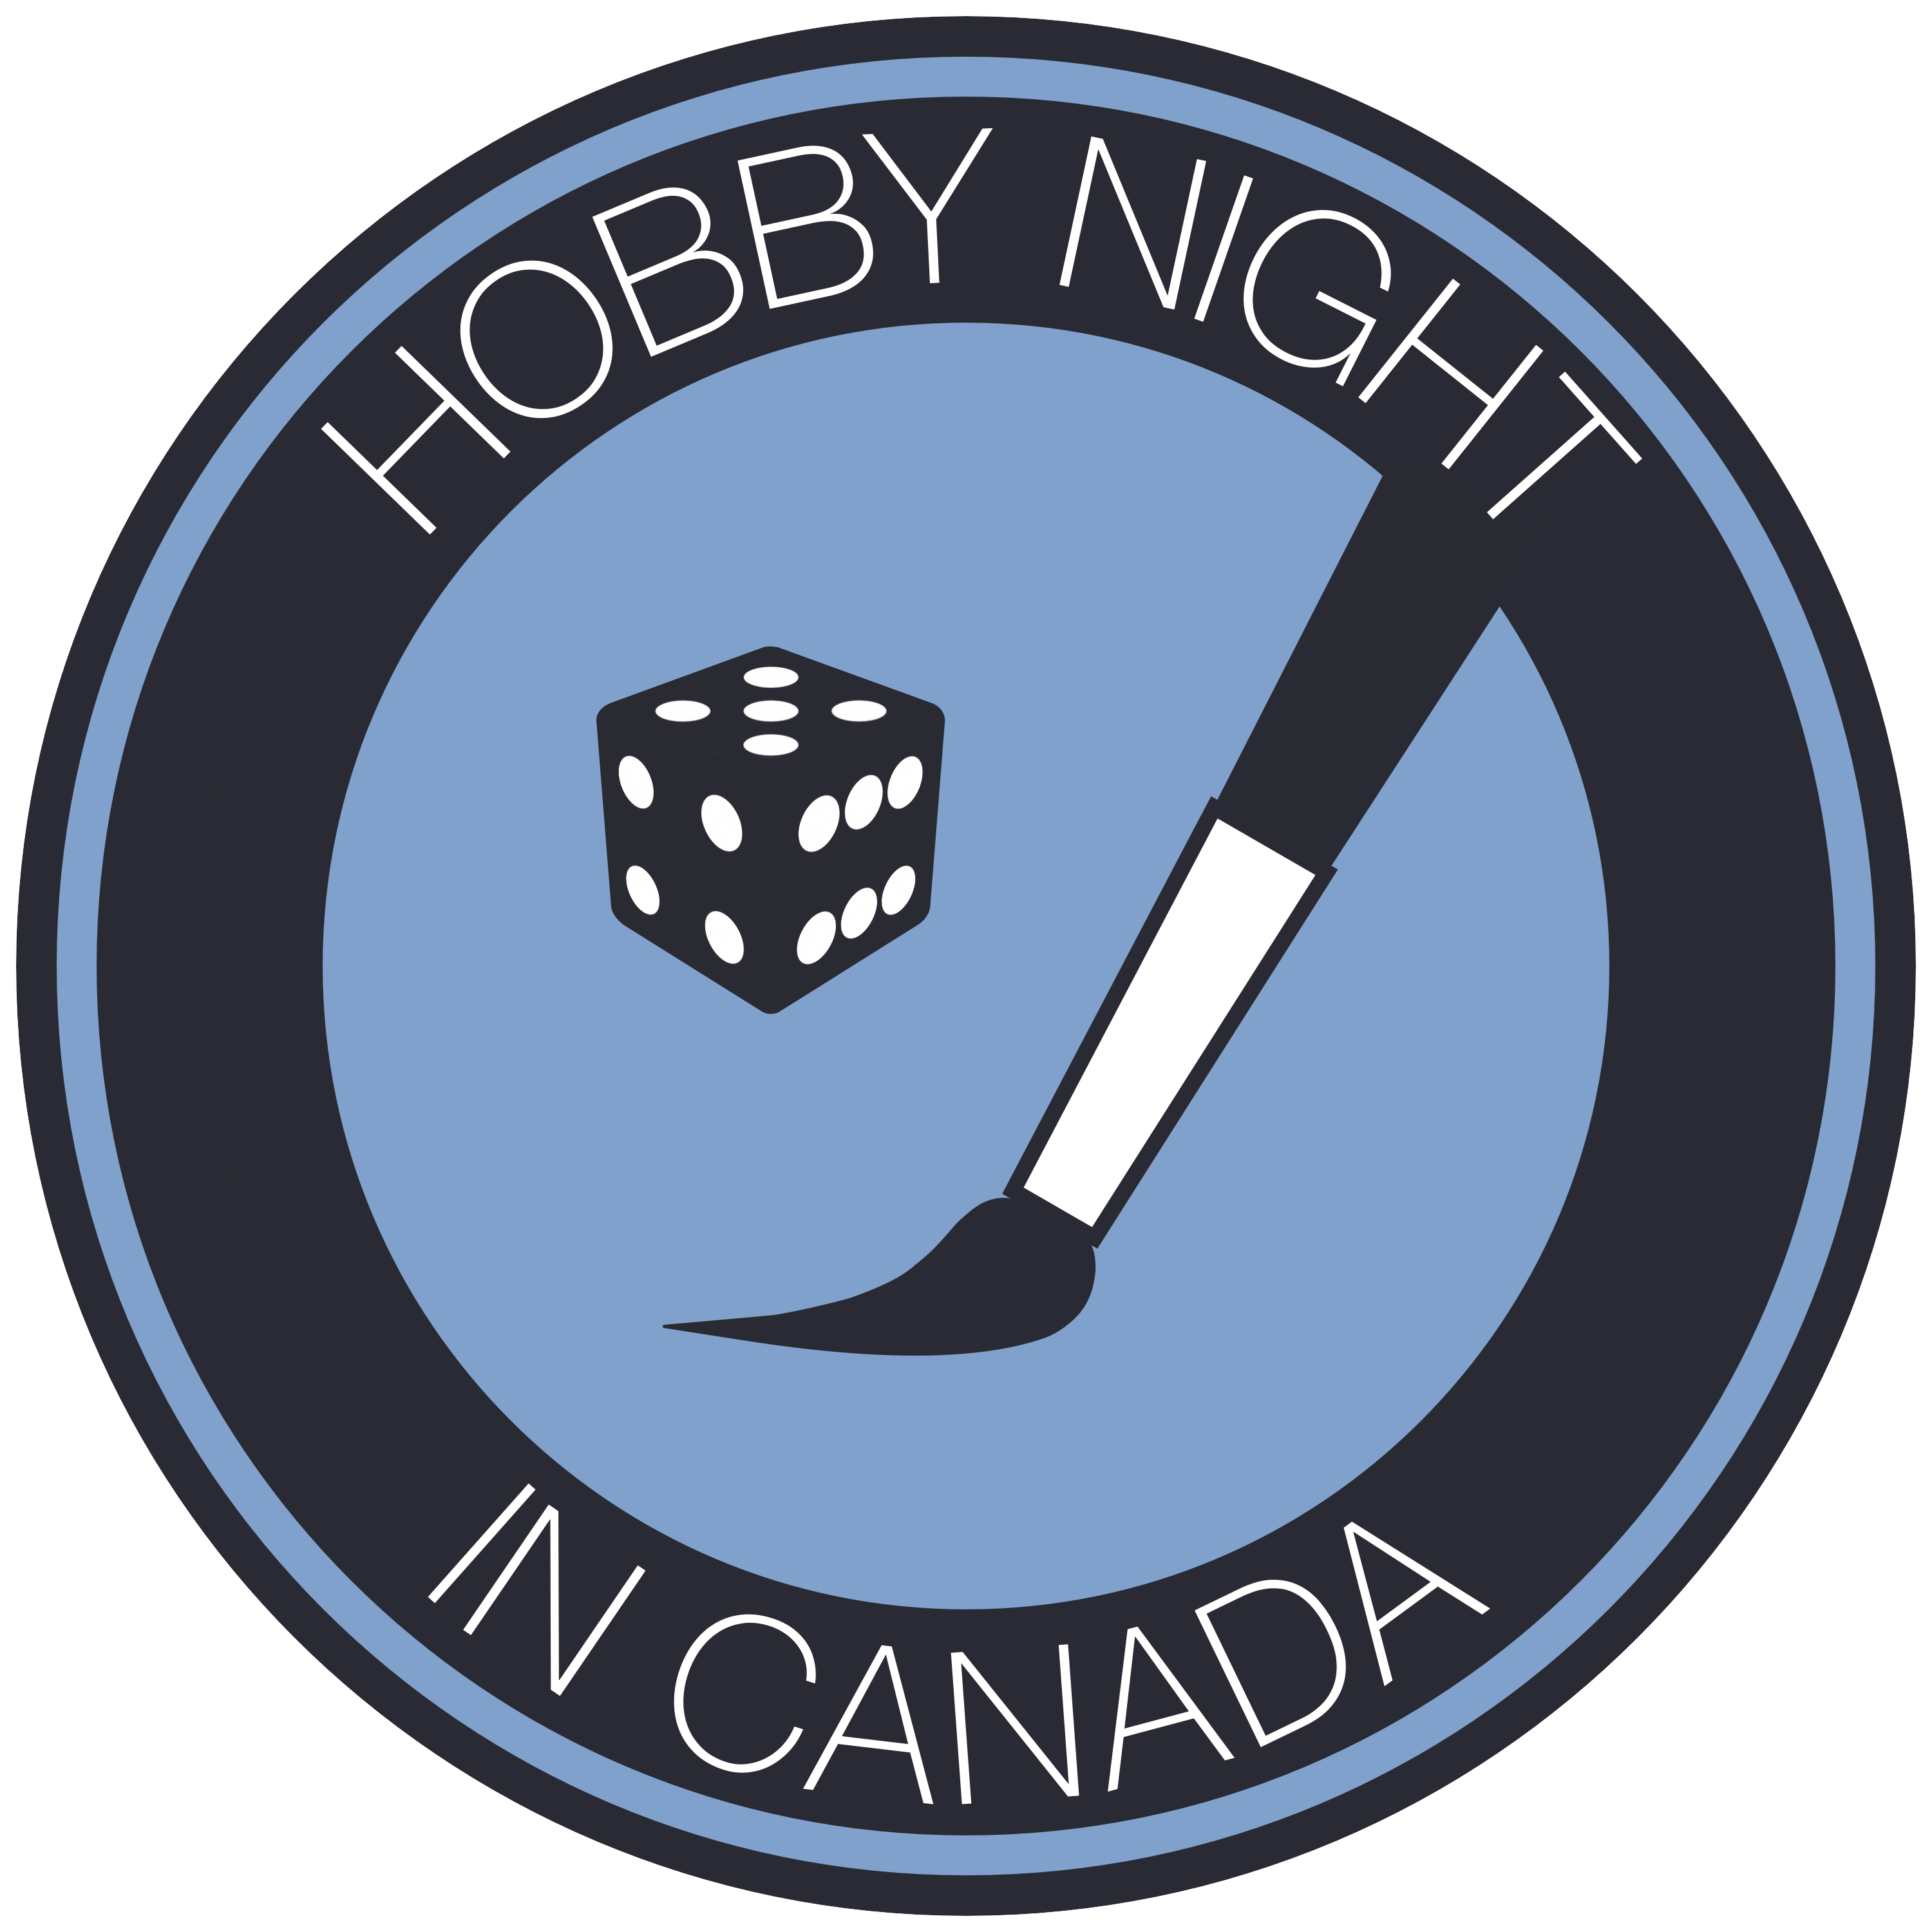 Hobby Night in Canada Podcast Logo